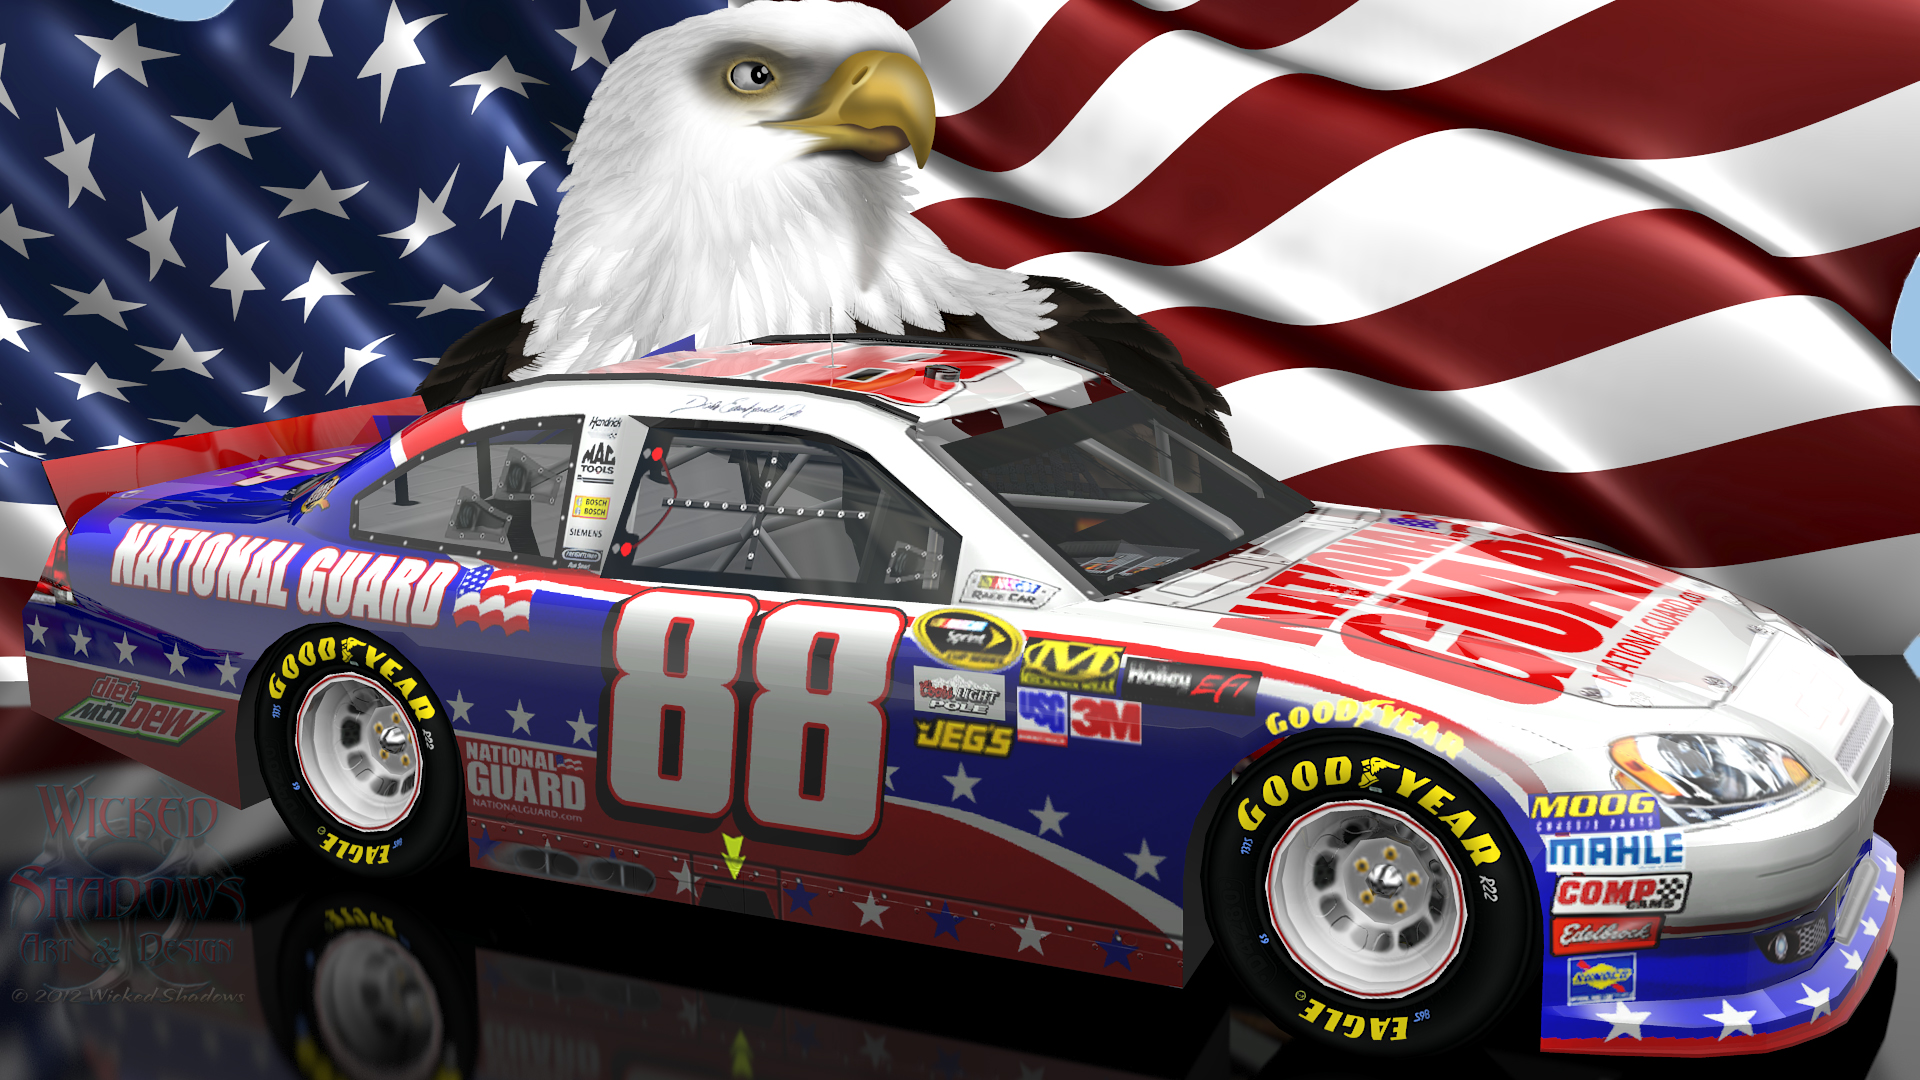 Wallpapers By Wicked Shadows Jimmie Johnson Nascar Unites: [47+] Wallpaper Of Dale Earnhardt On WallpaperSafari